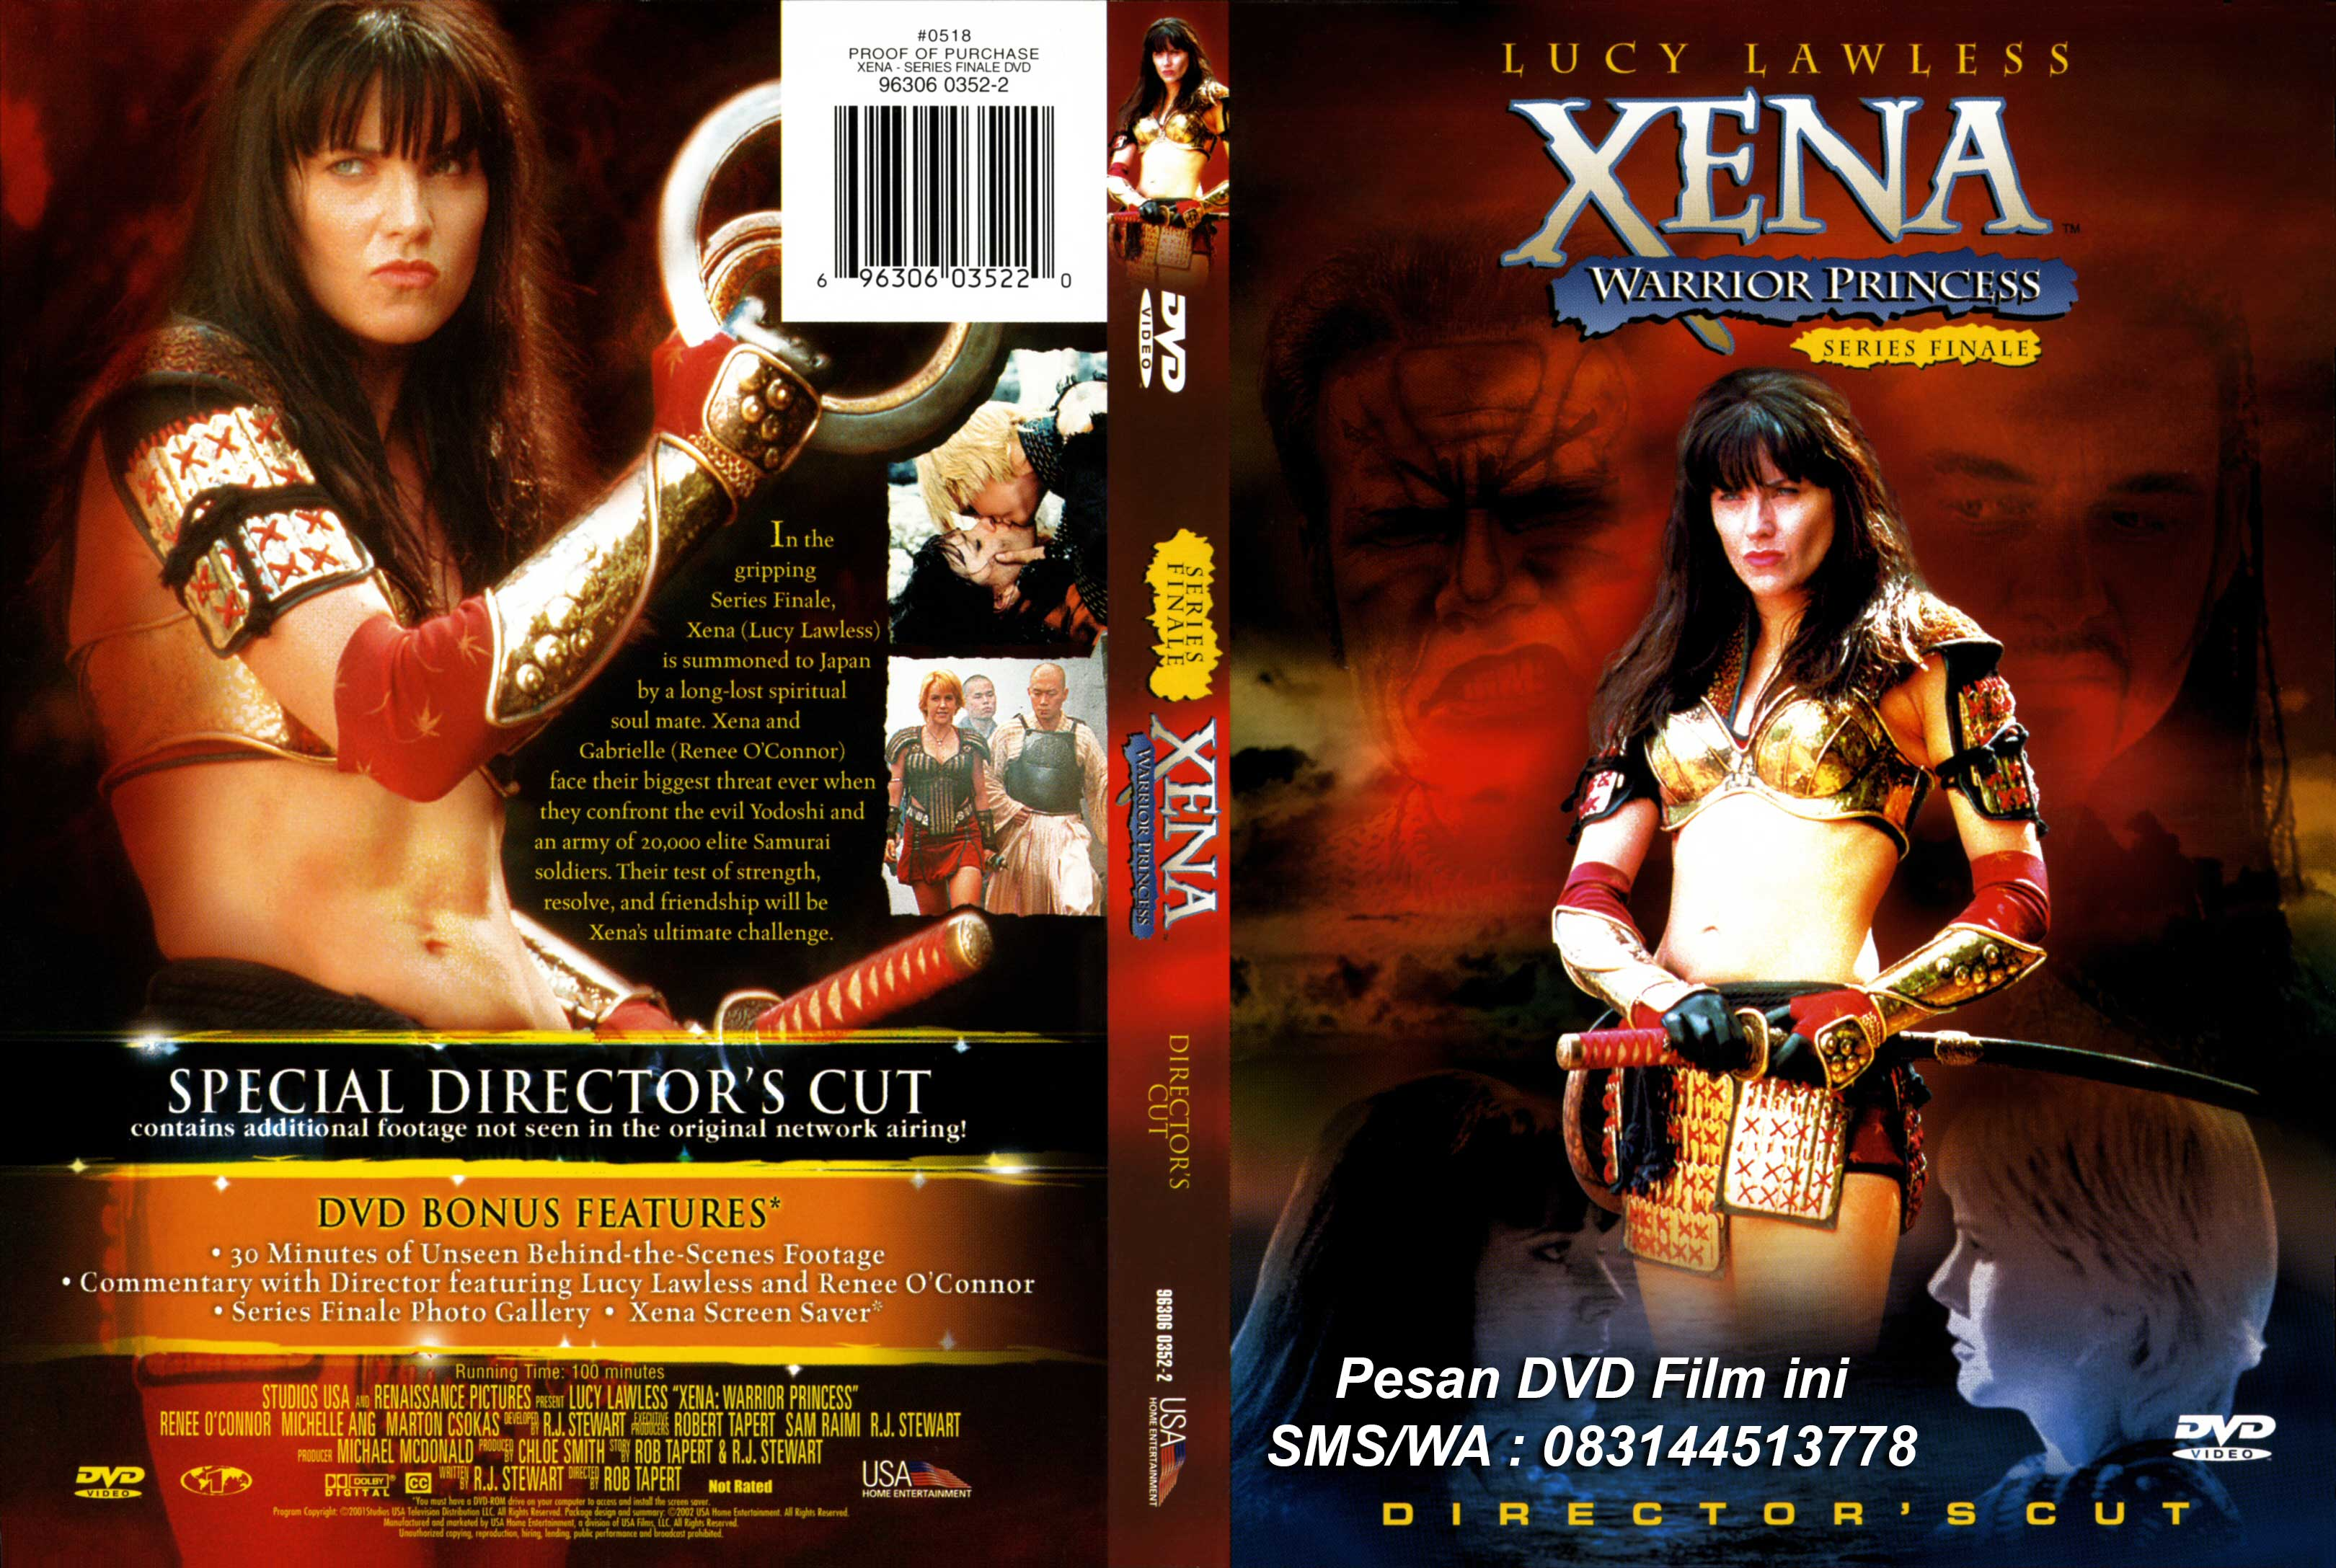 Xena the warrior princess nude nude pictures